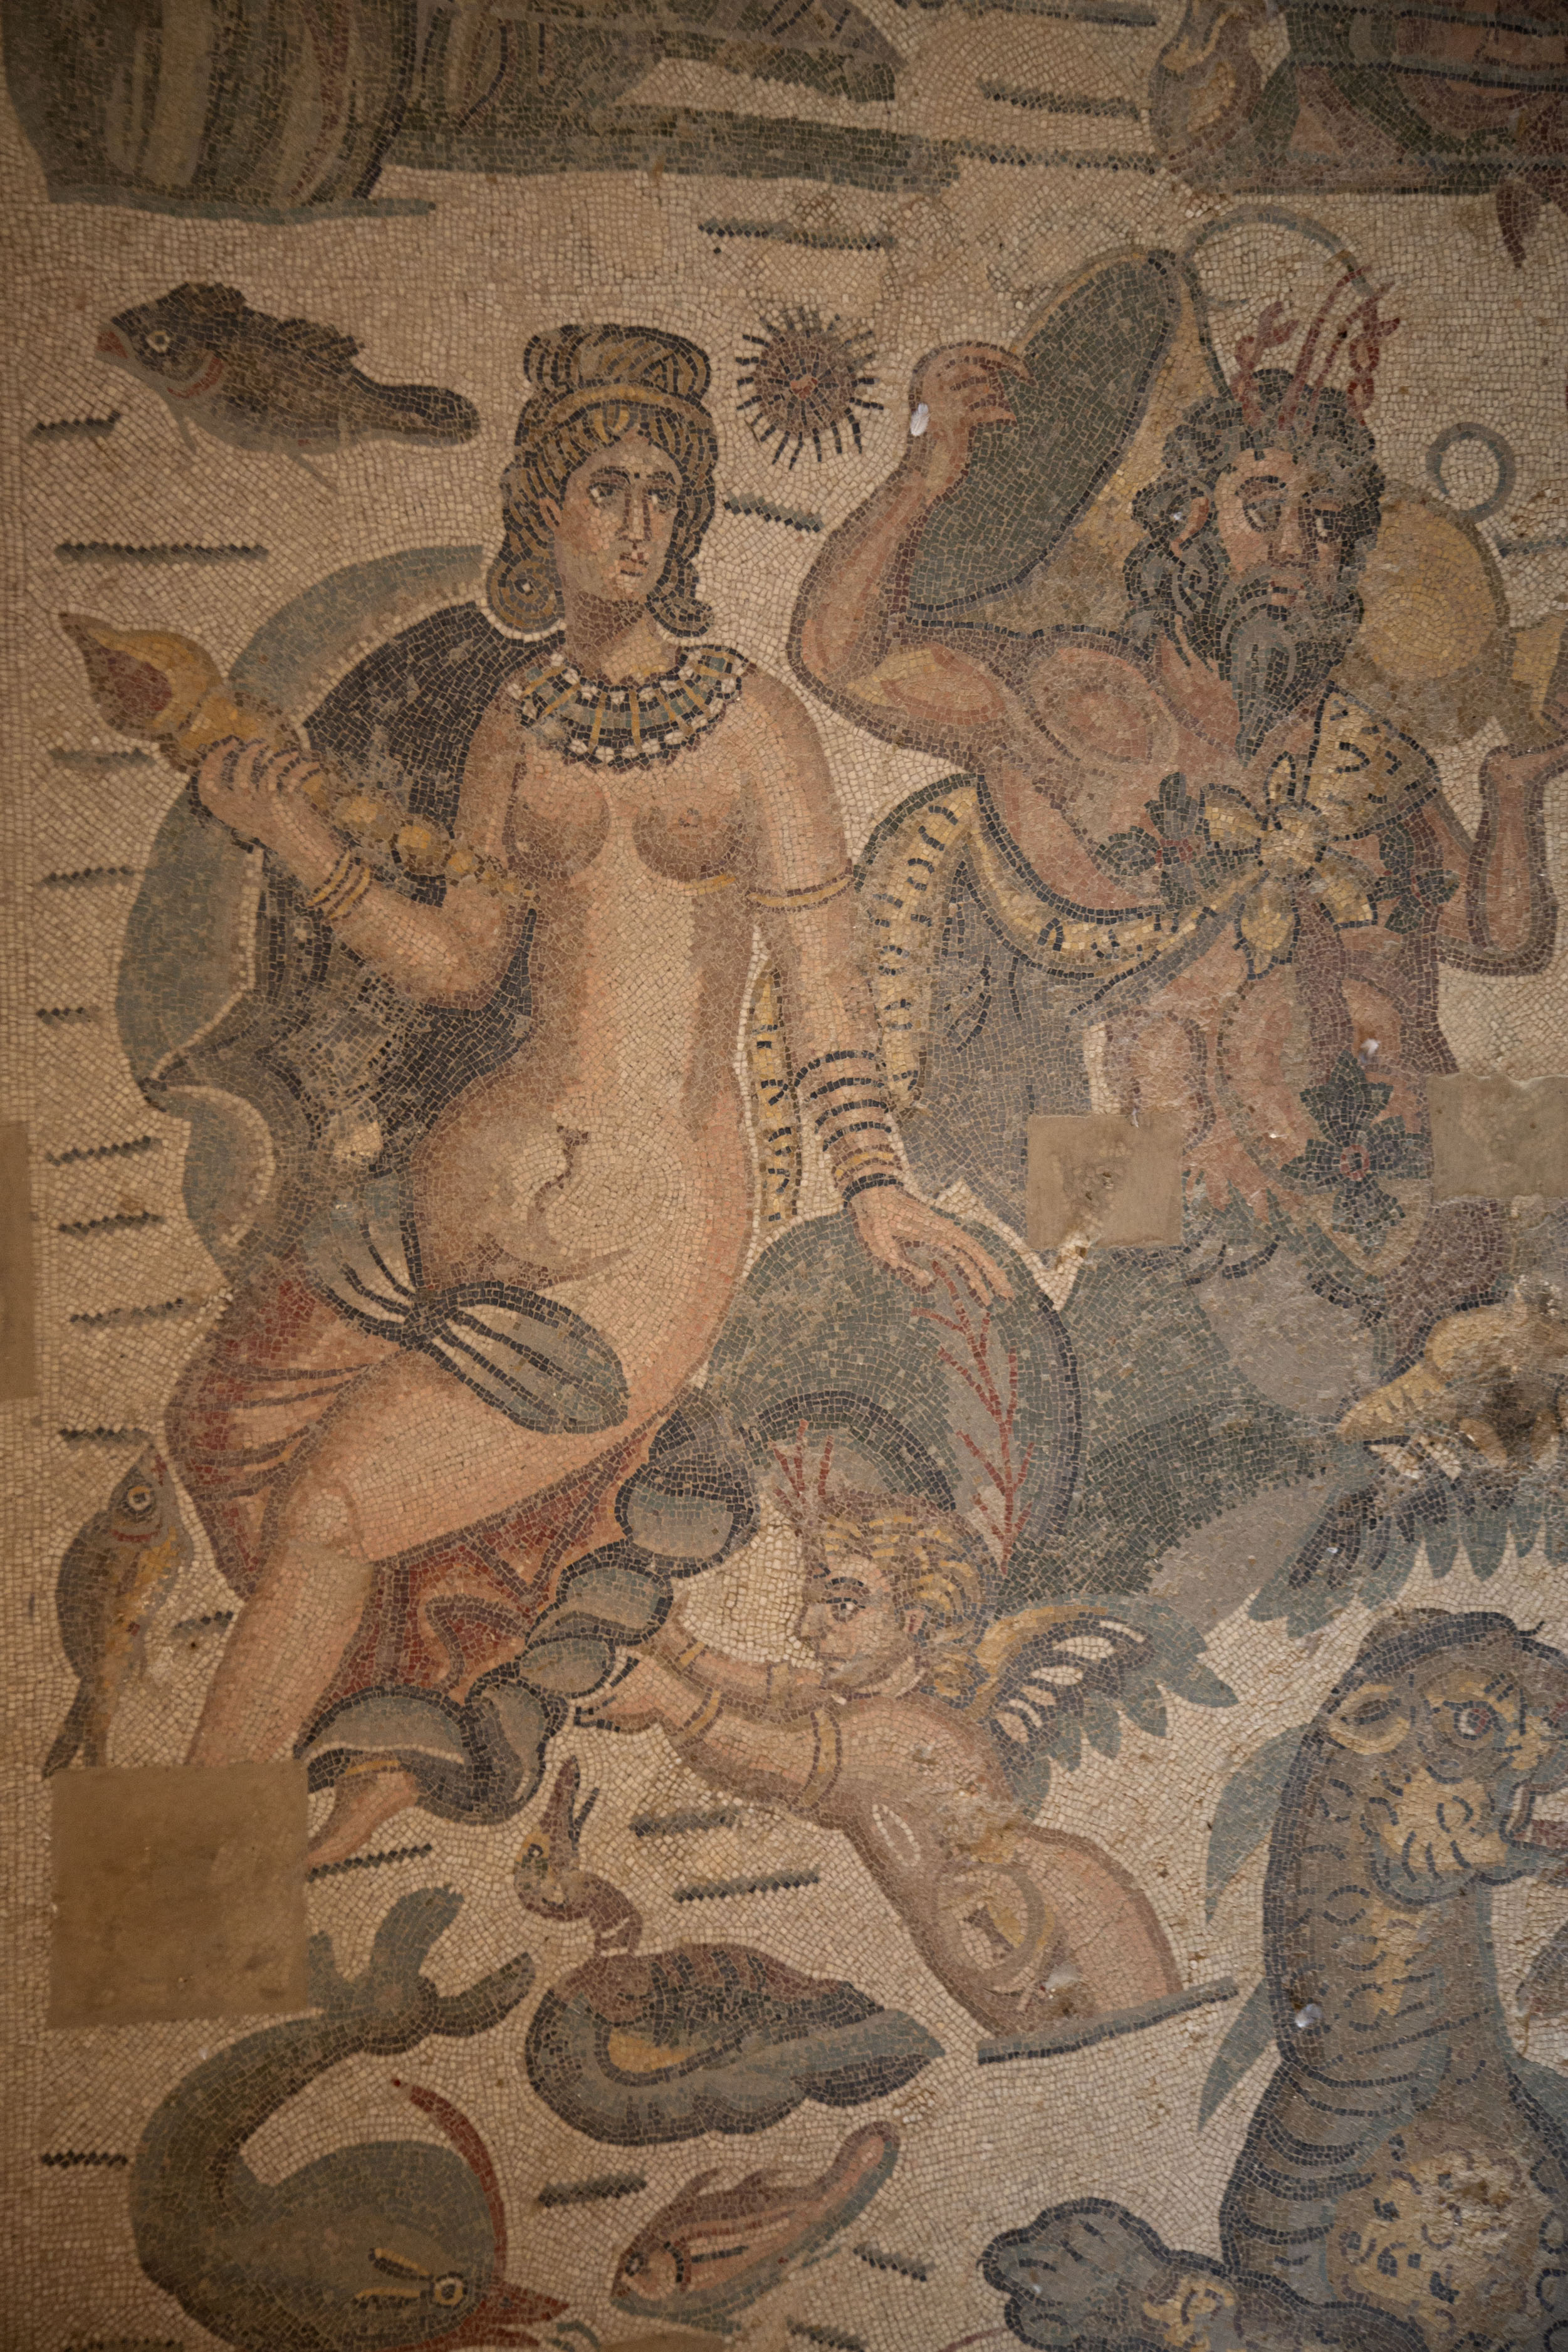 Detail of a mosaic in the Diaeta of Arione - 意大利